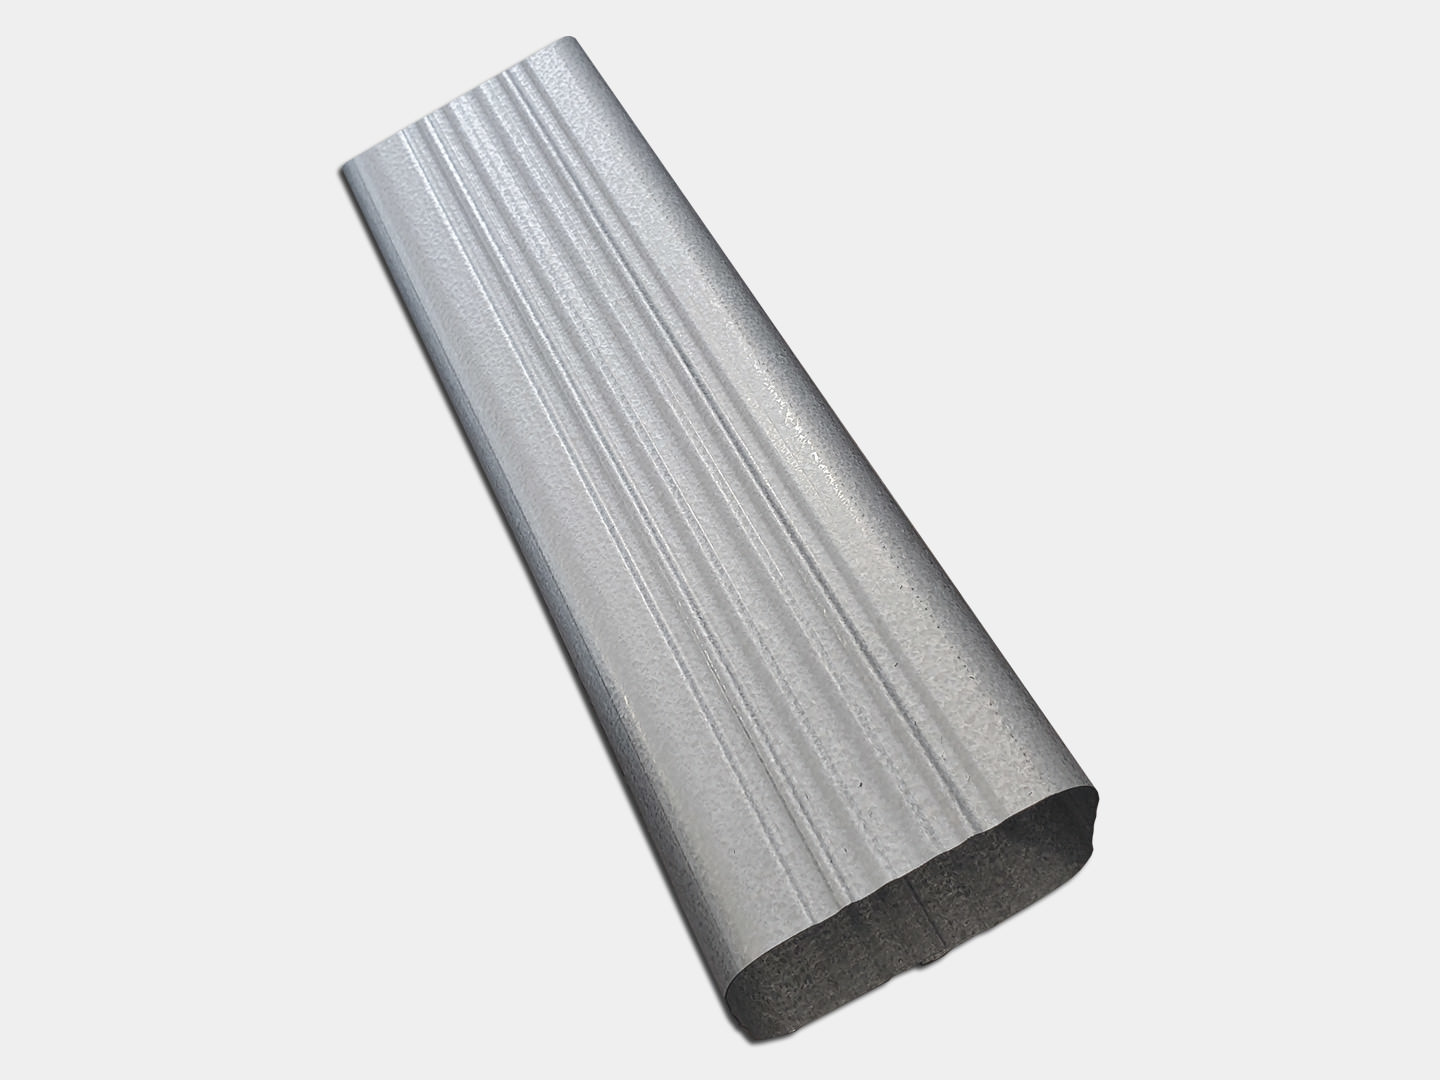 Square Corrugated Galvalume Plus Downspout